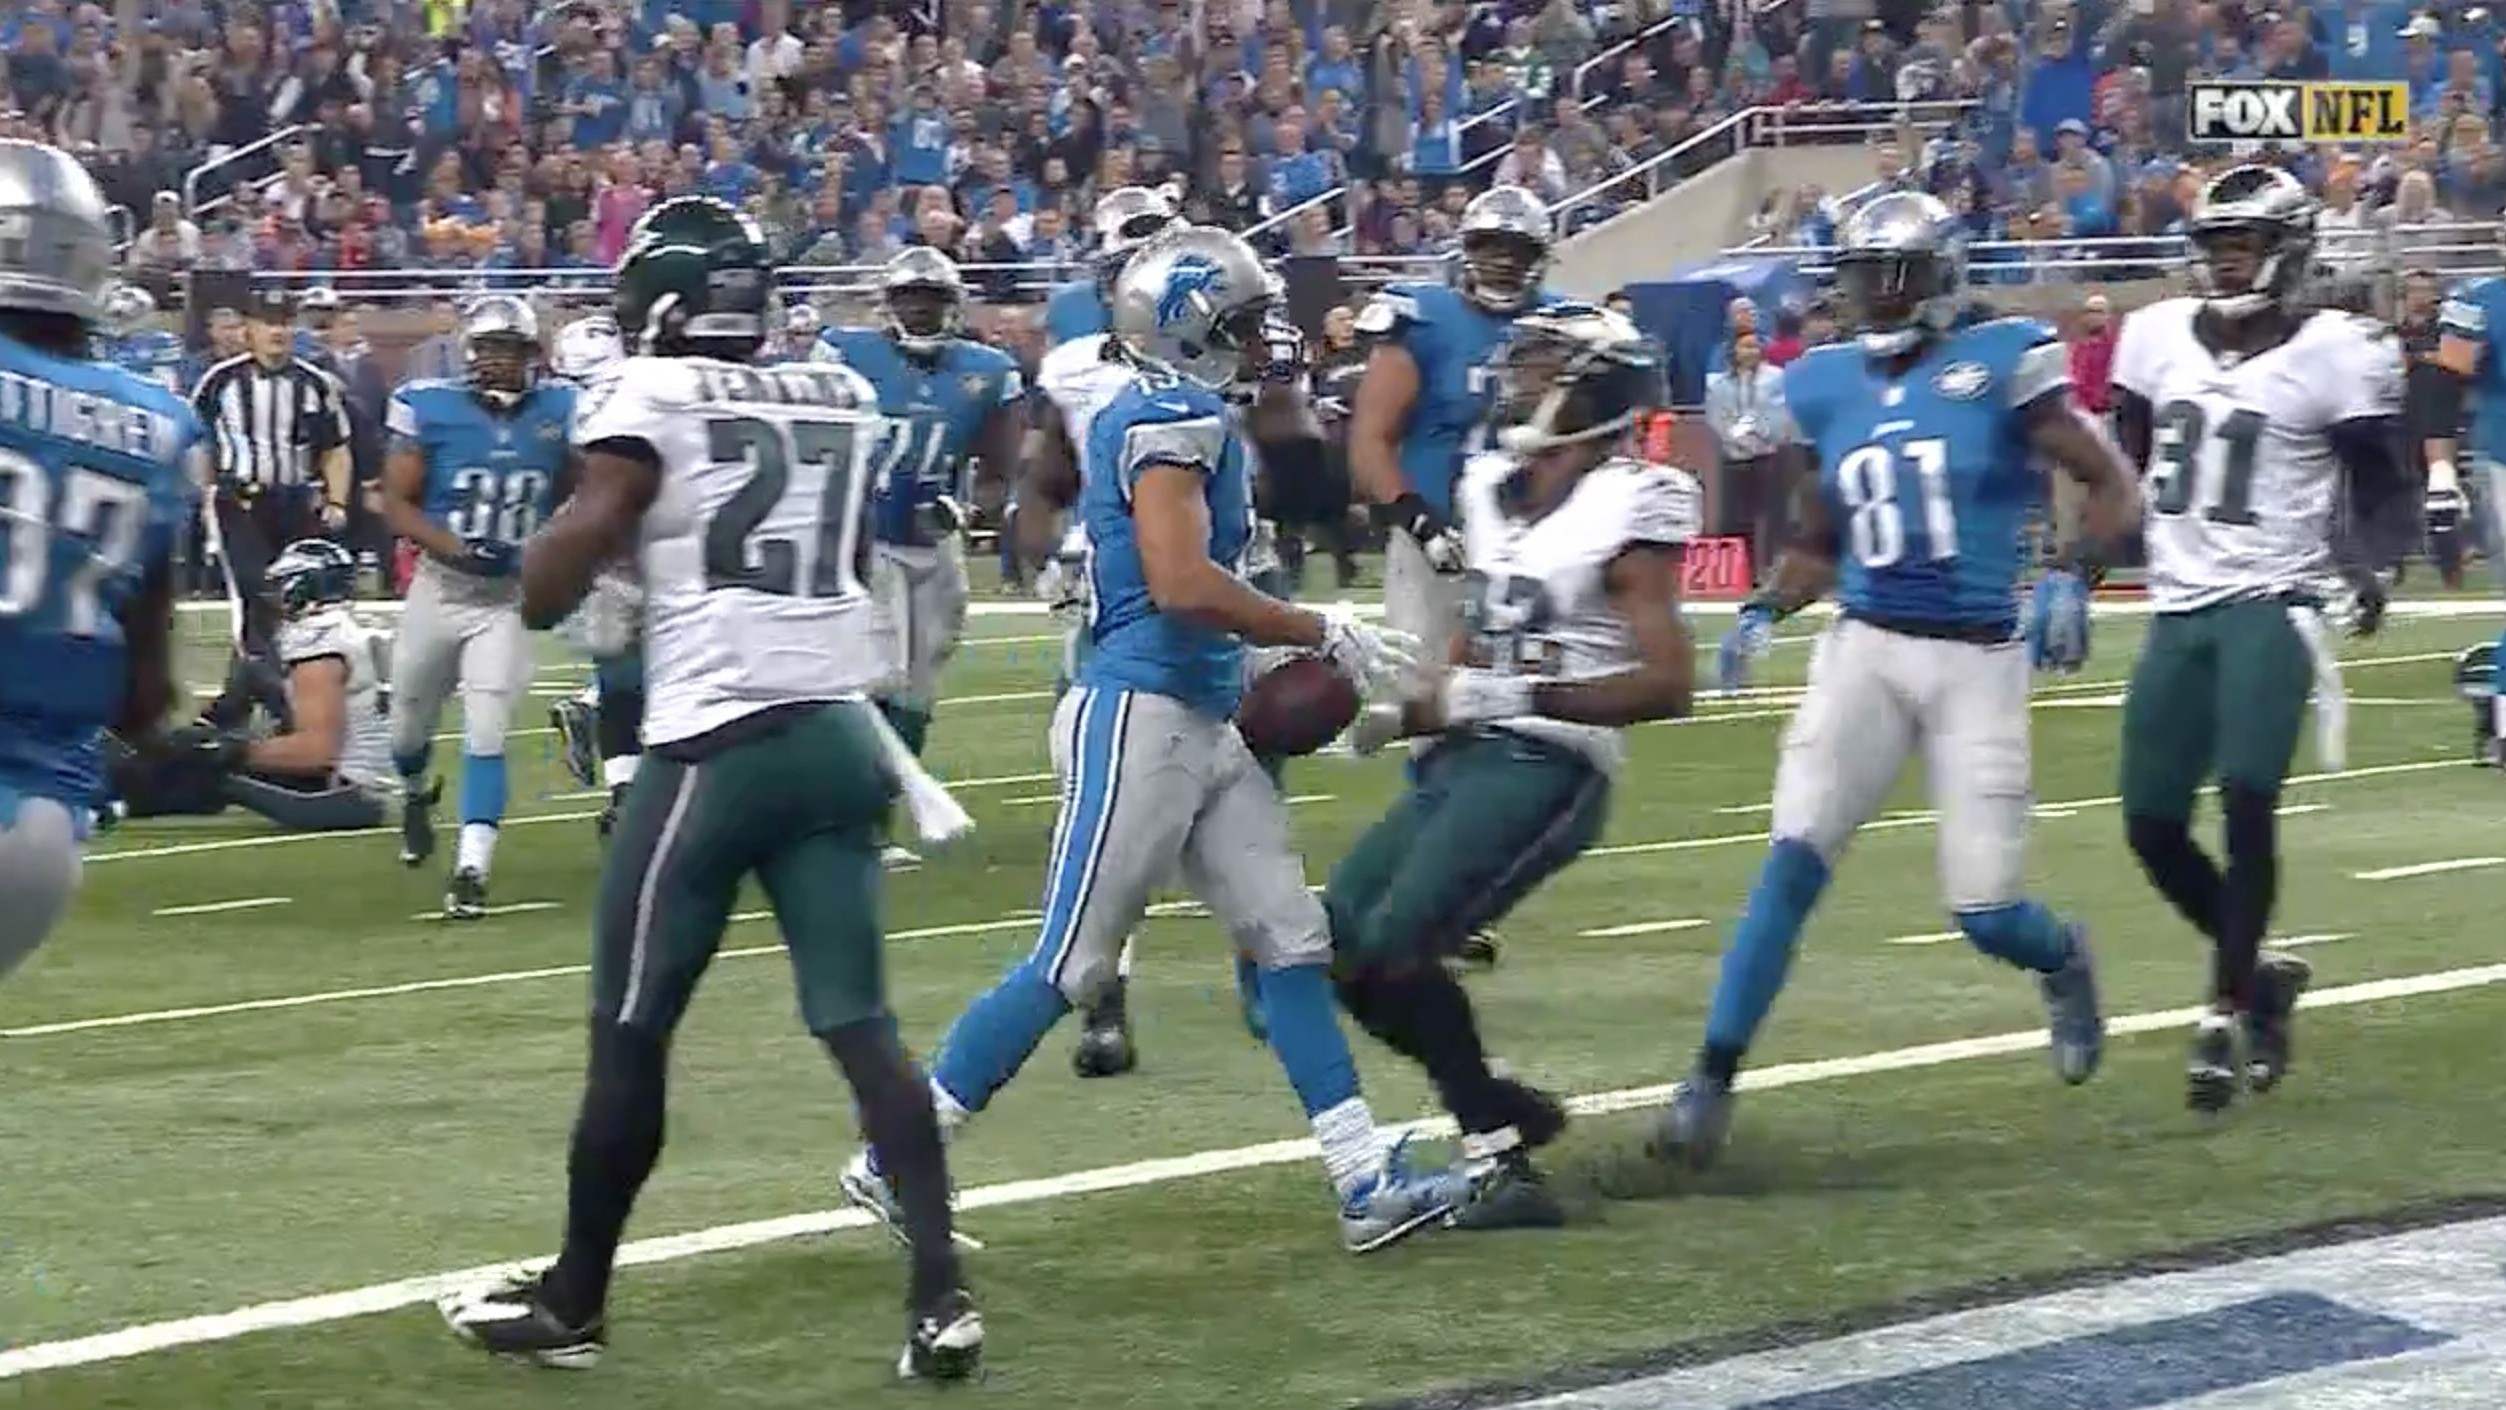 Golden Tate Cuts So Hard, He Could Walk into the End Zone